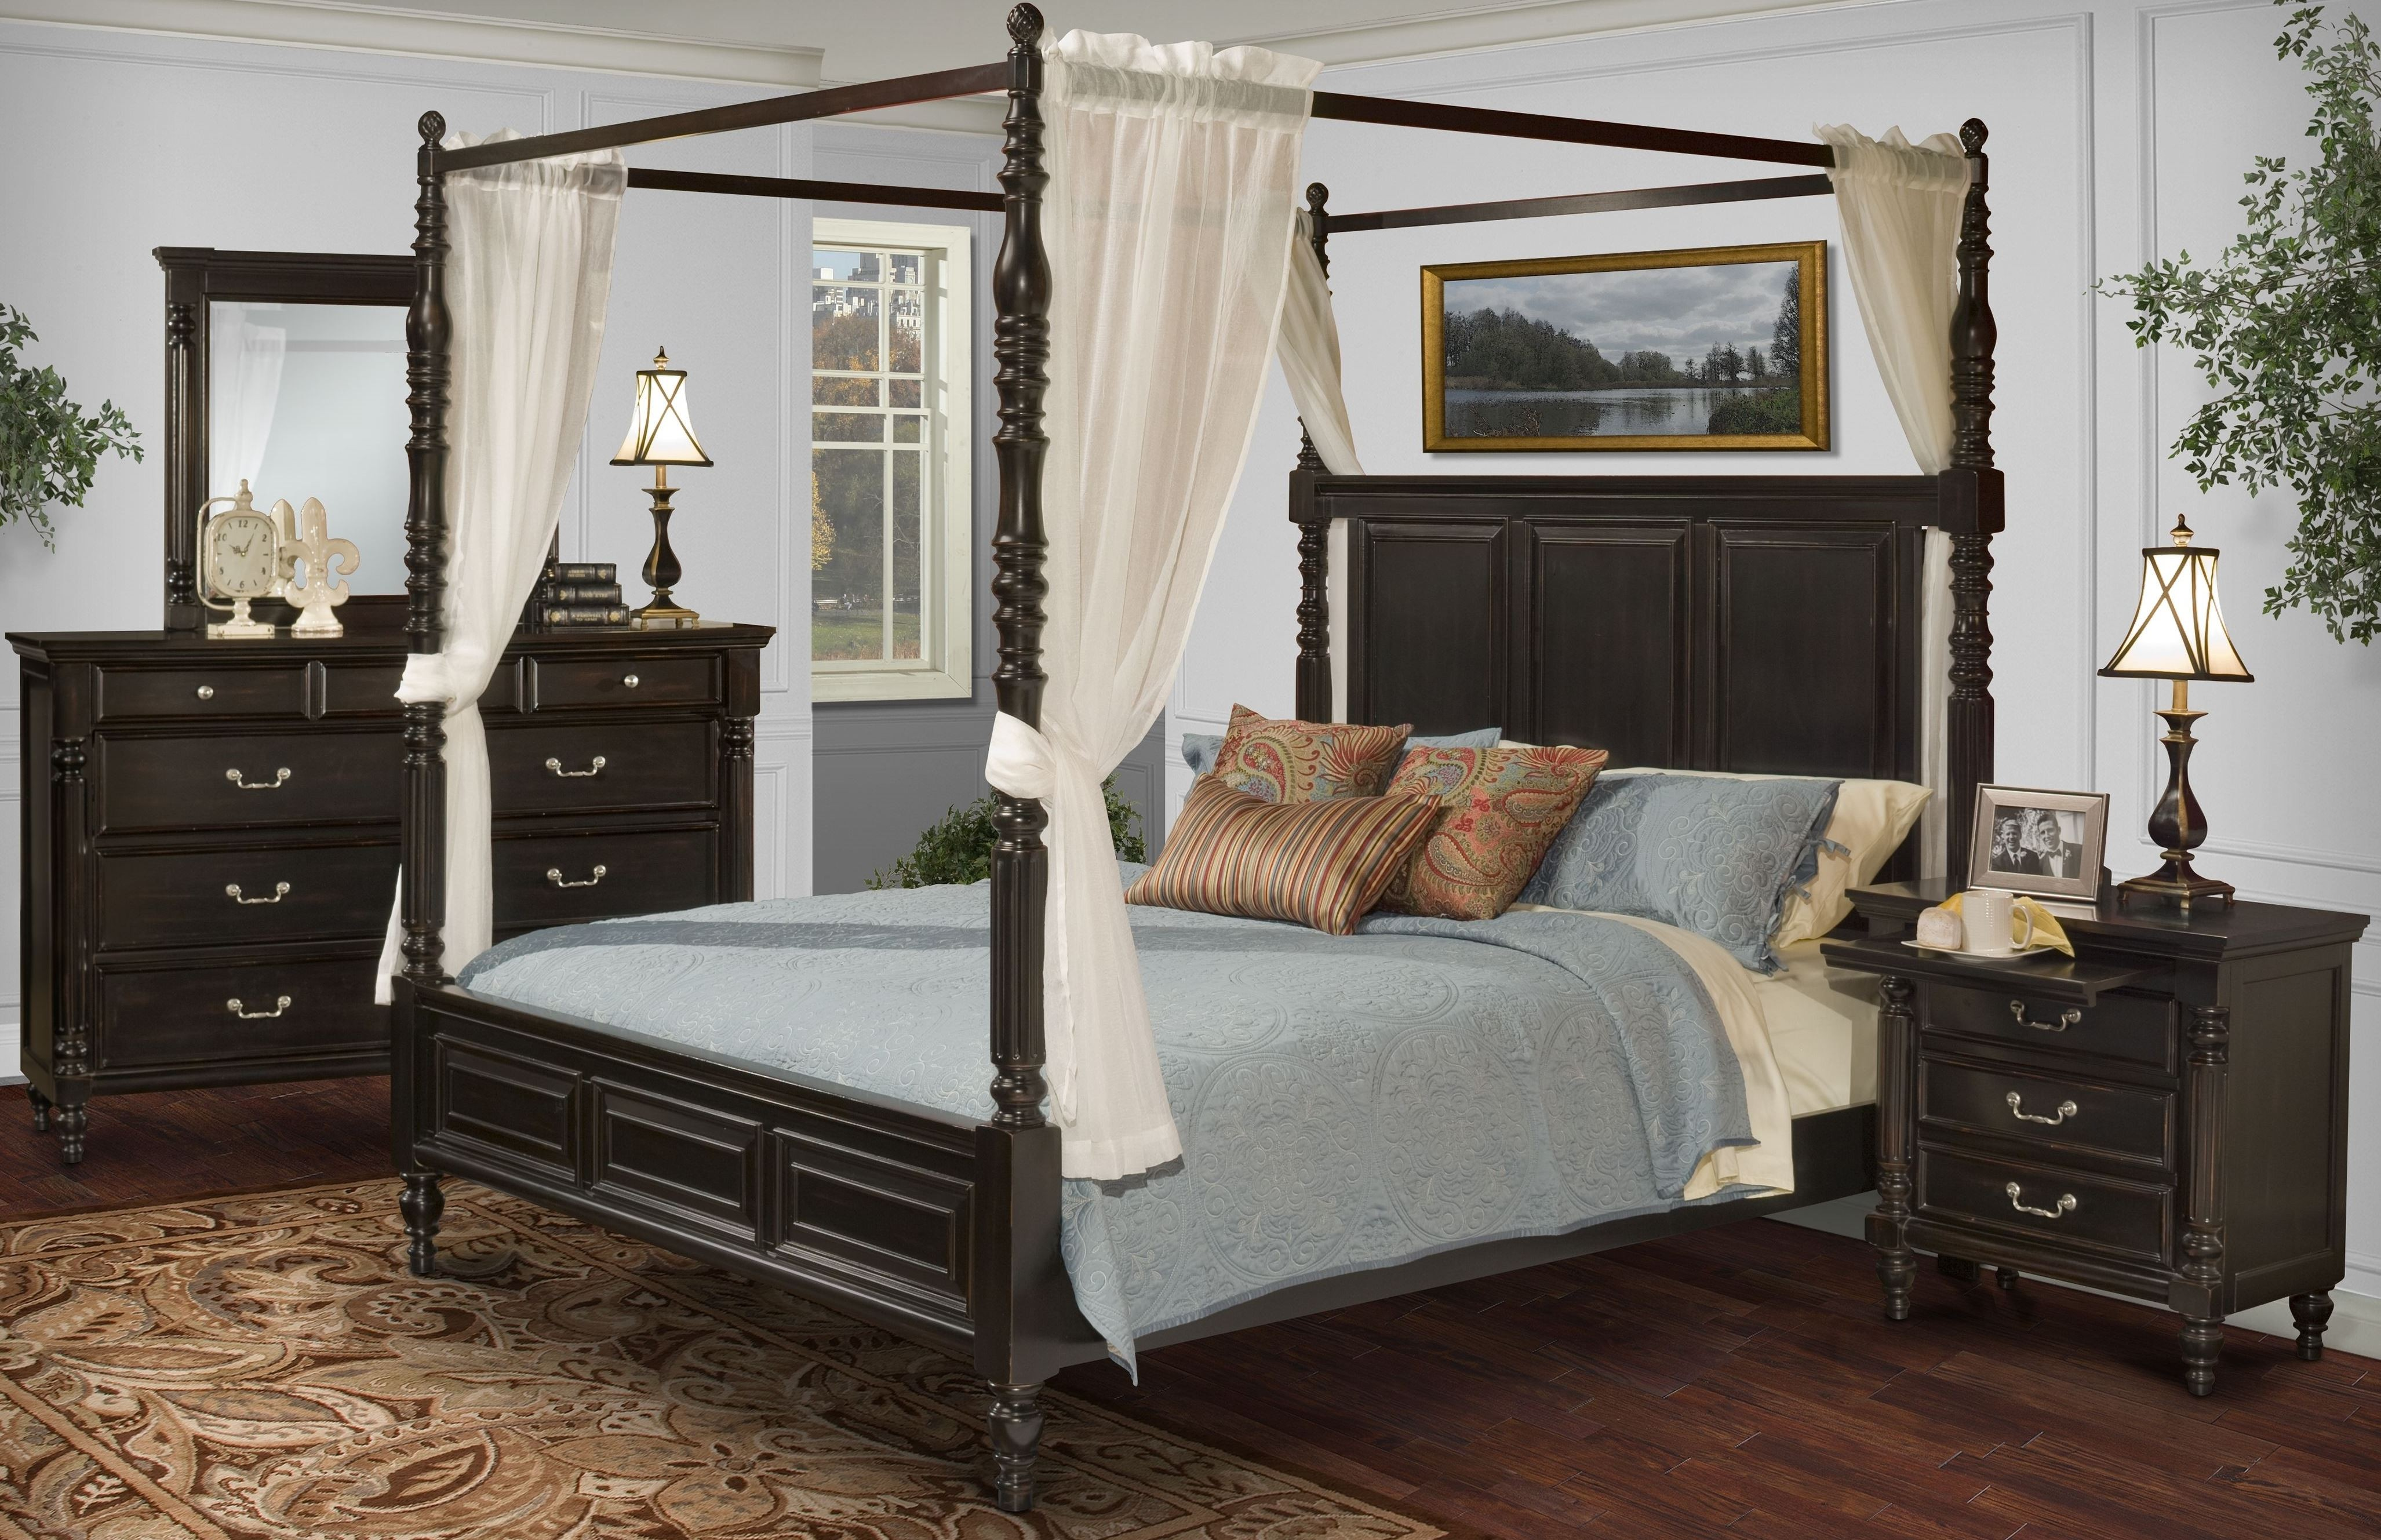 Martinique Rubbed Black Canopy Bedroom Set With Drapes from New ...